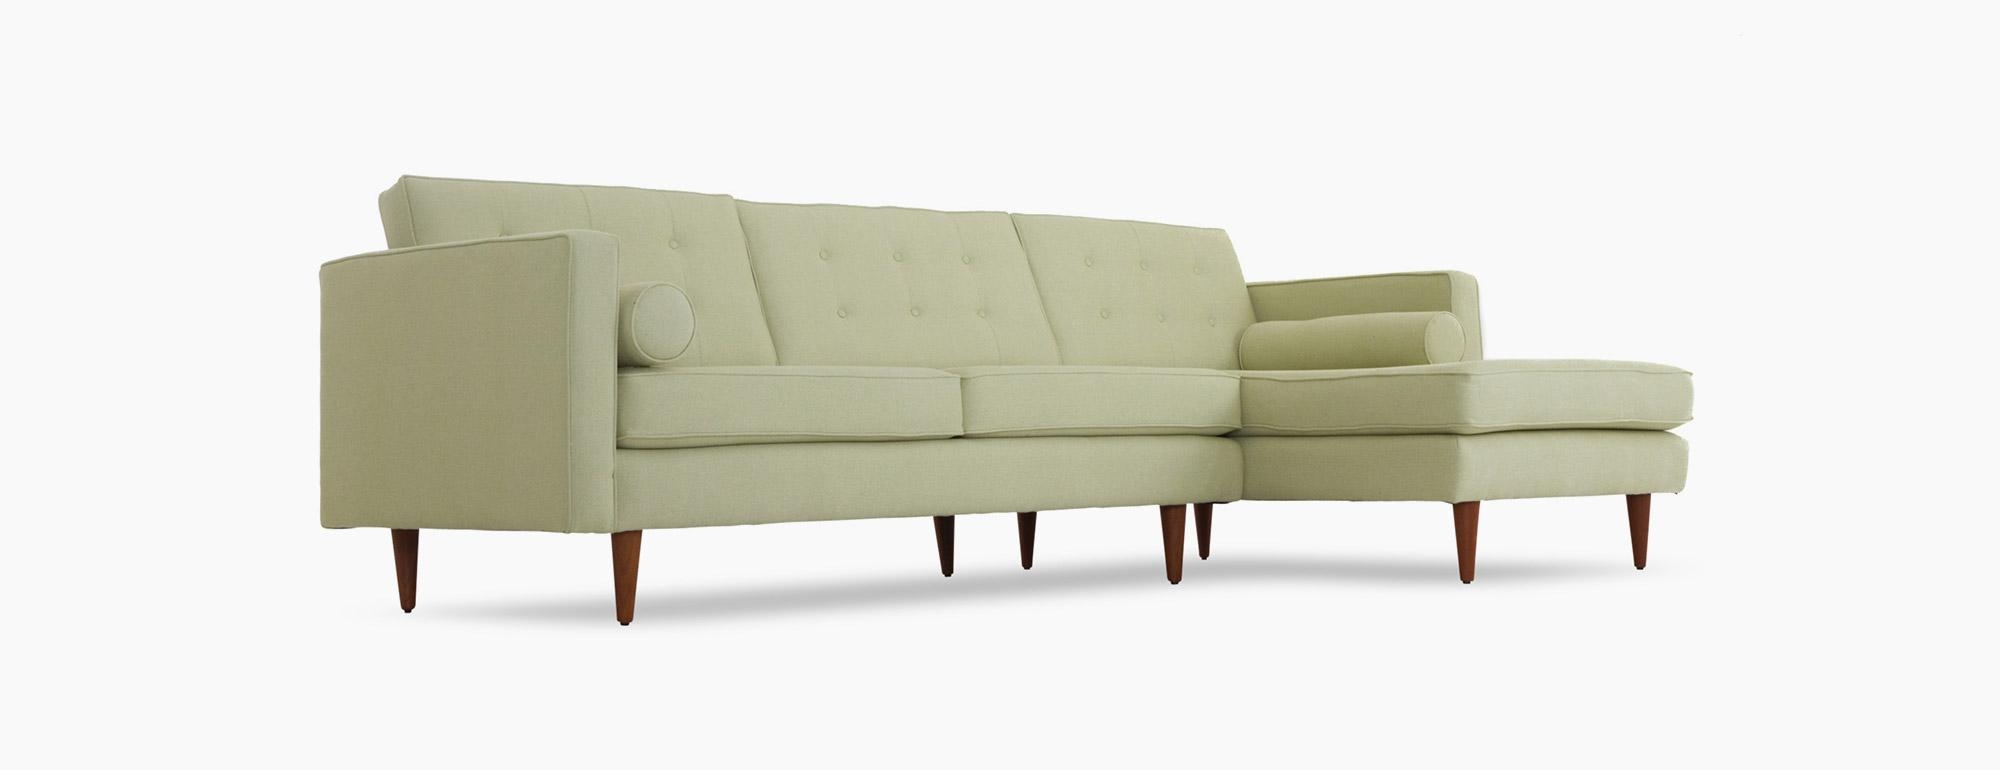 Braxton Sectional | Joybird In Braxton Sectional Sofa (View 4 of 15)